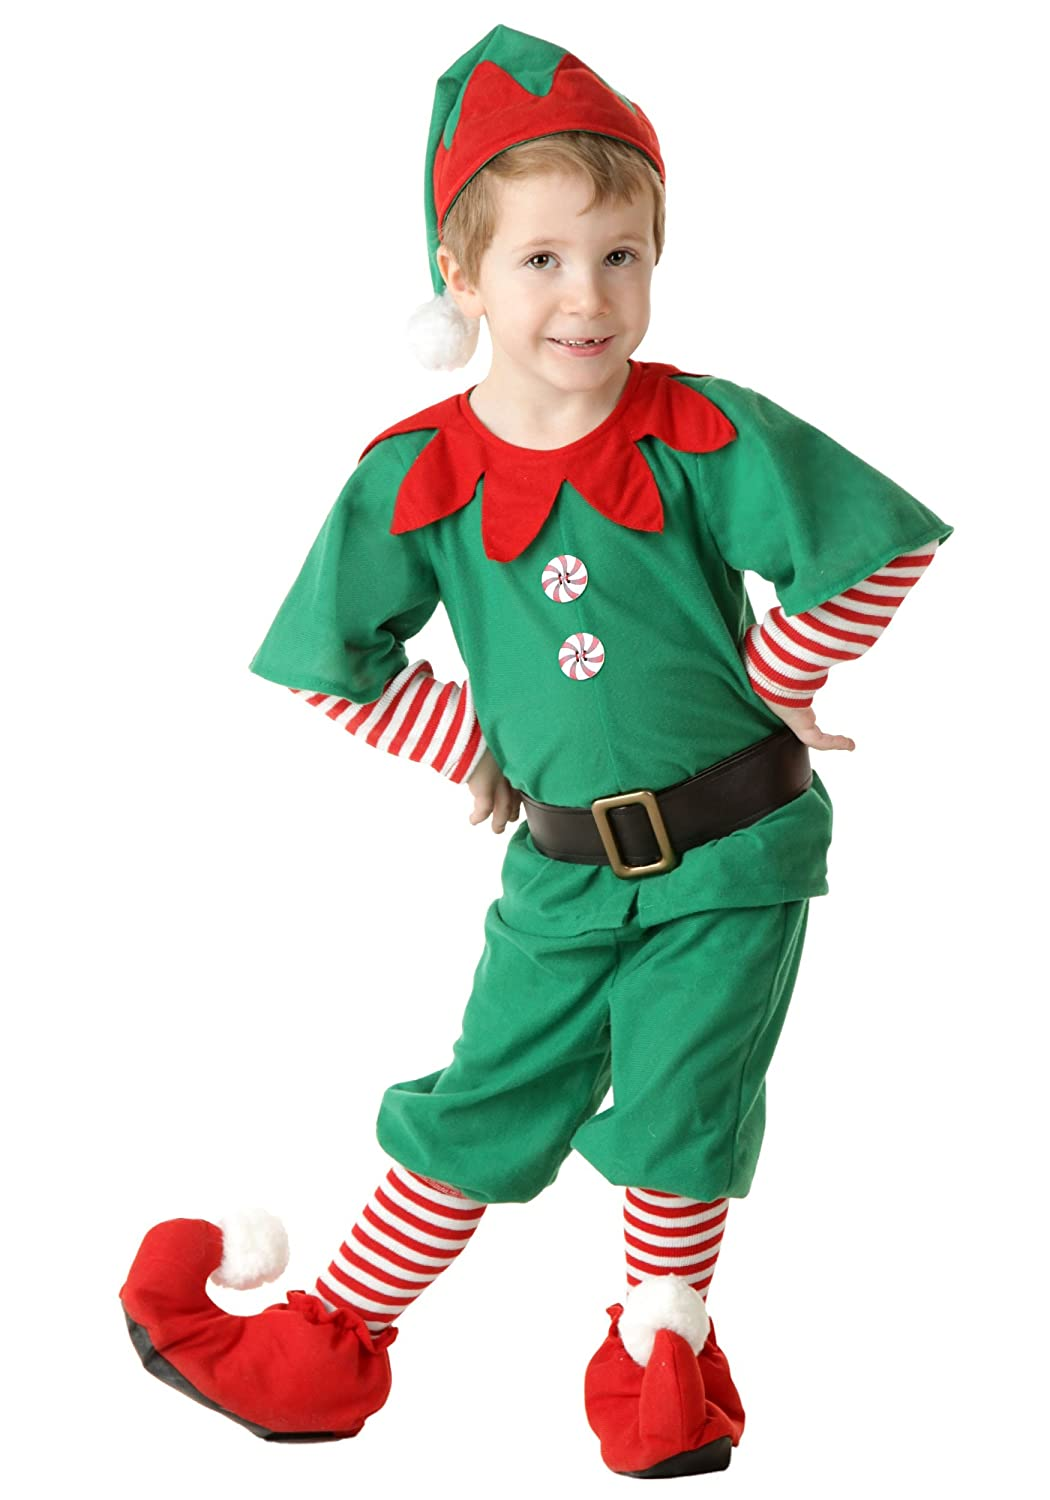 Christmas Elf Costume.Toddler Happy Christmas Elf Costume